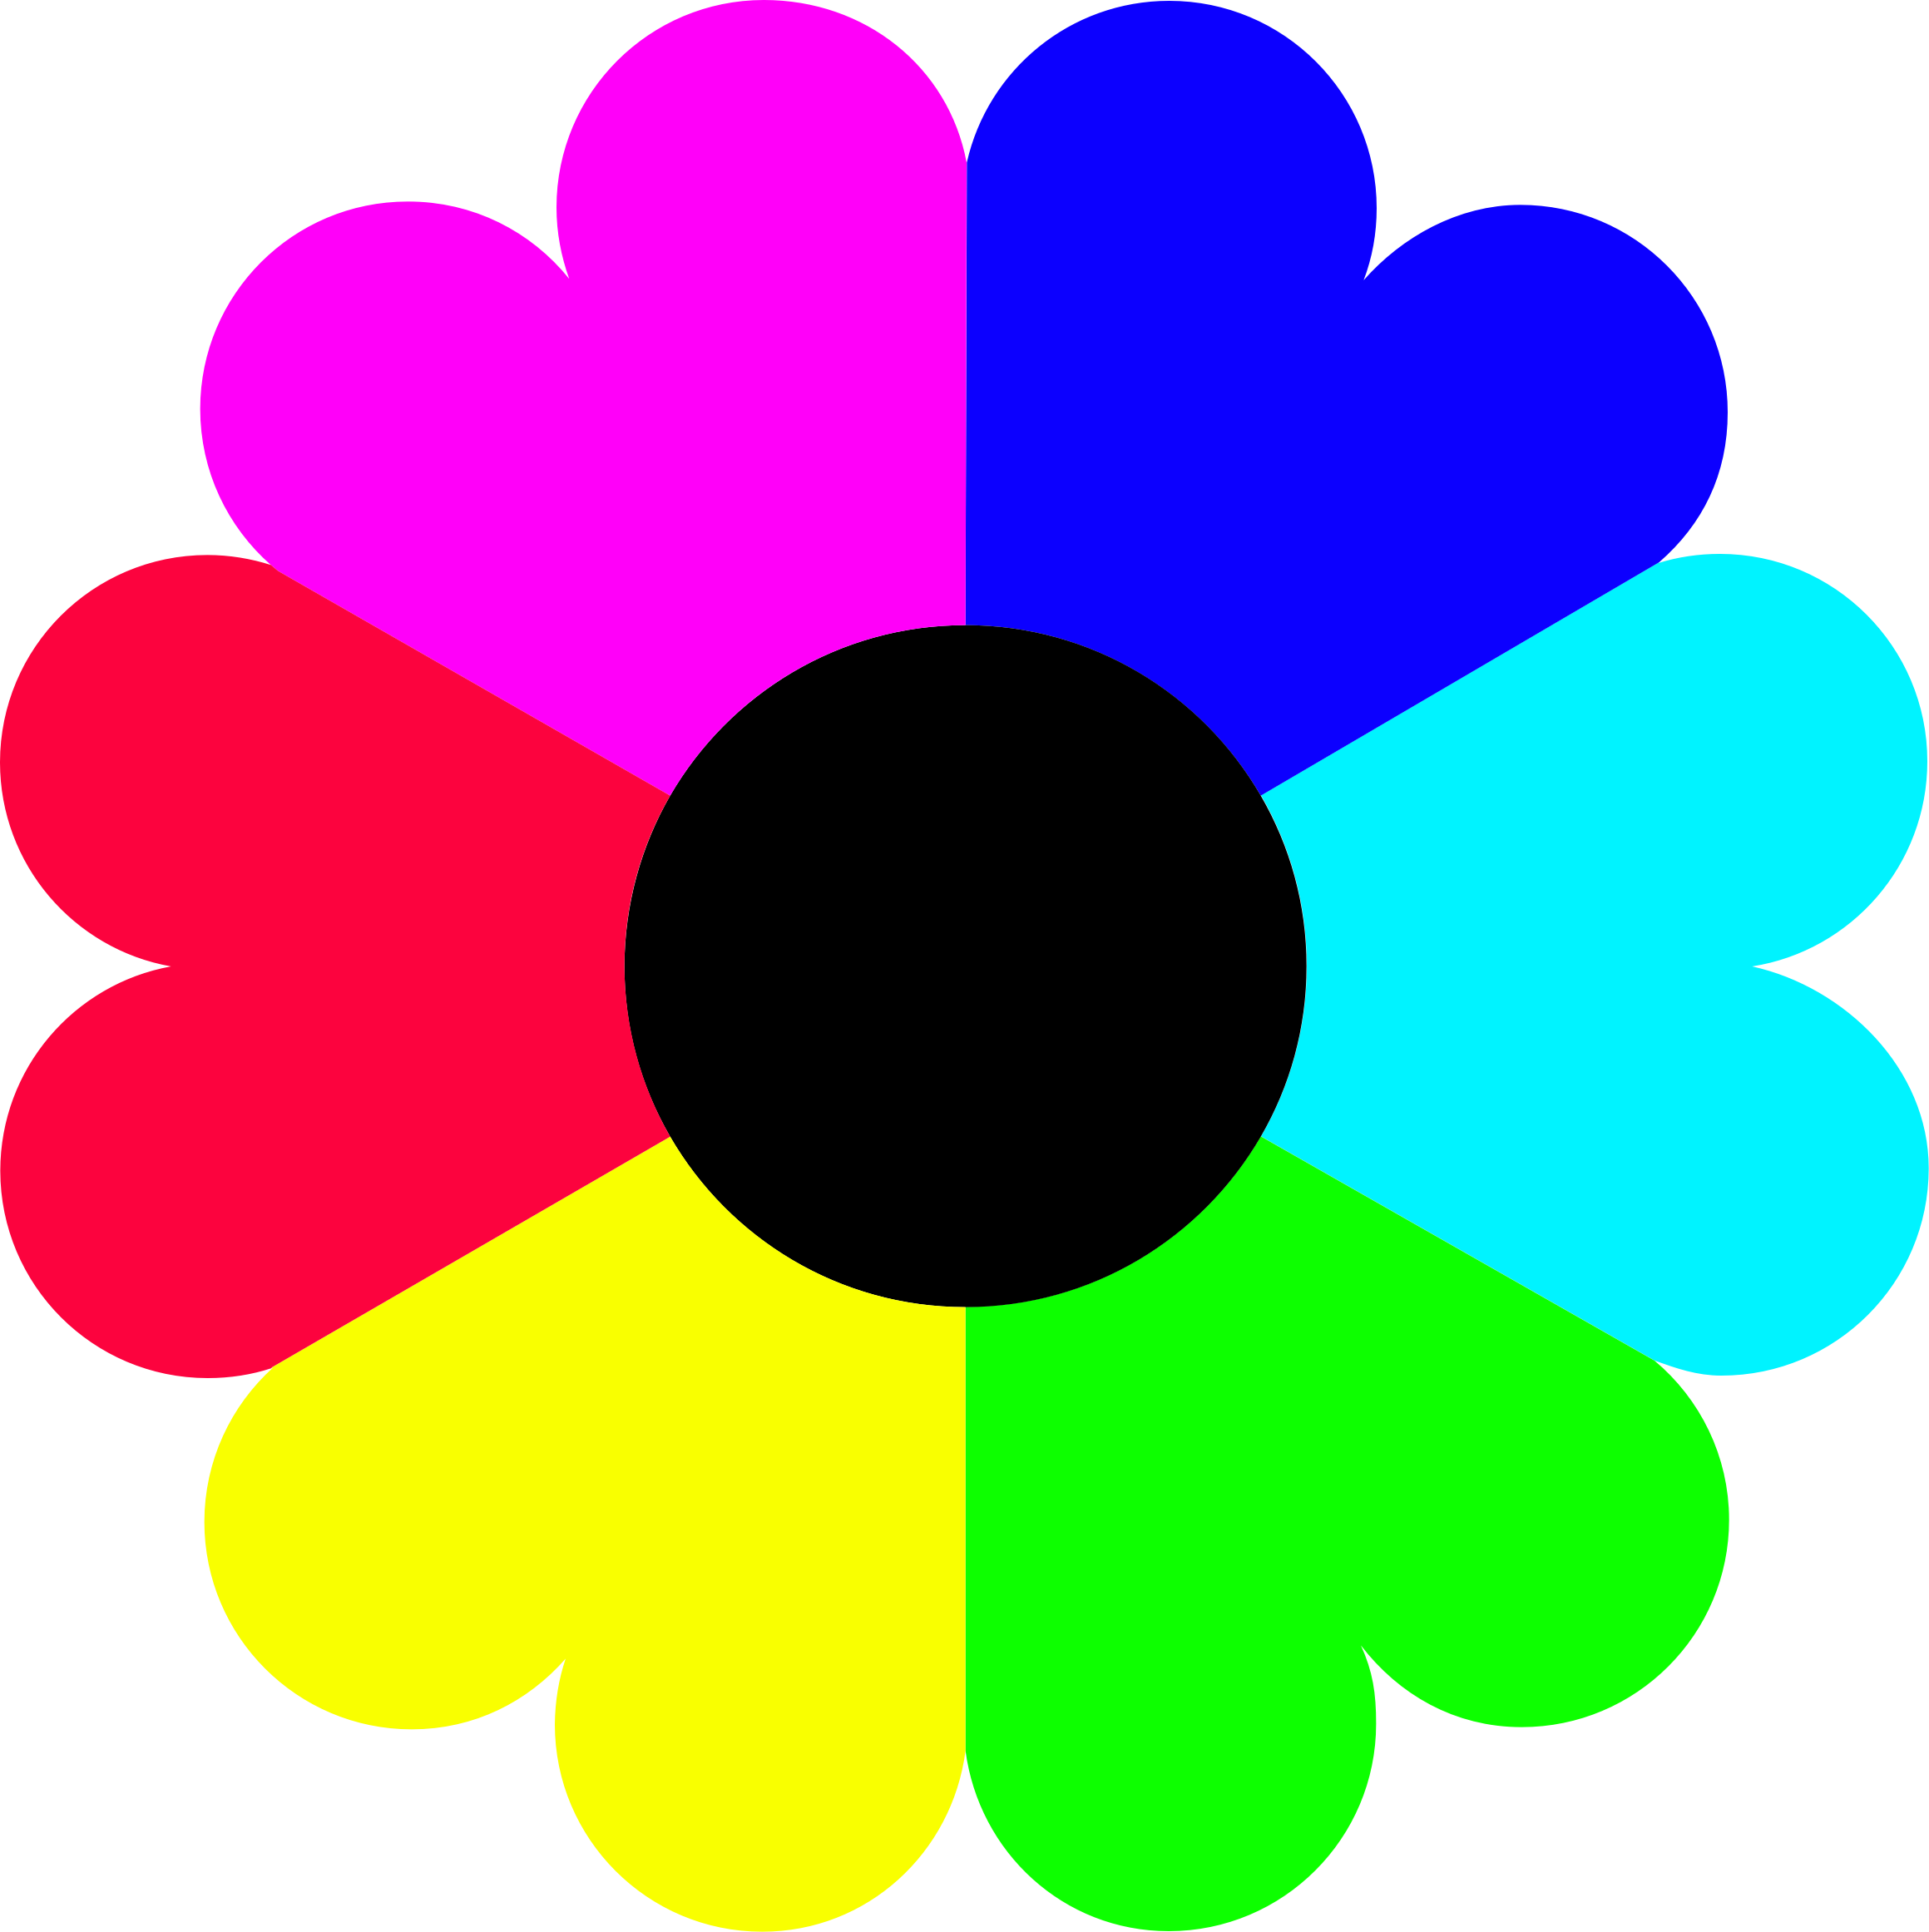 Colorful flower clipart clip art black and white Clipart - Flower 7 colors clip art black and white